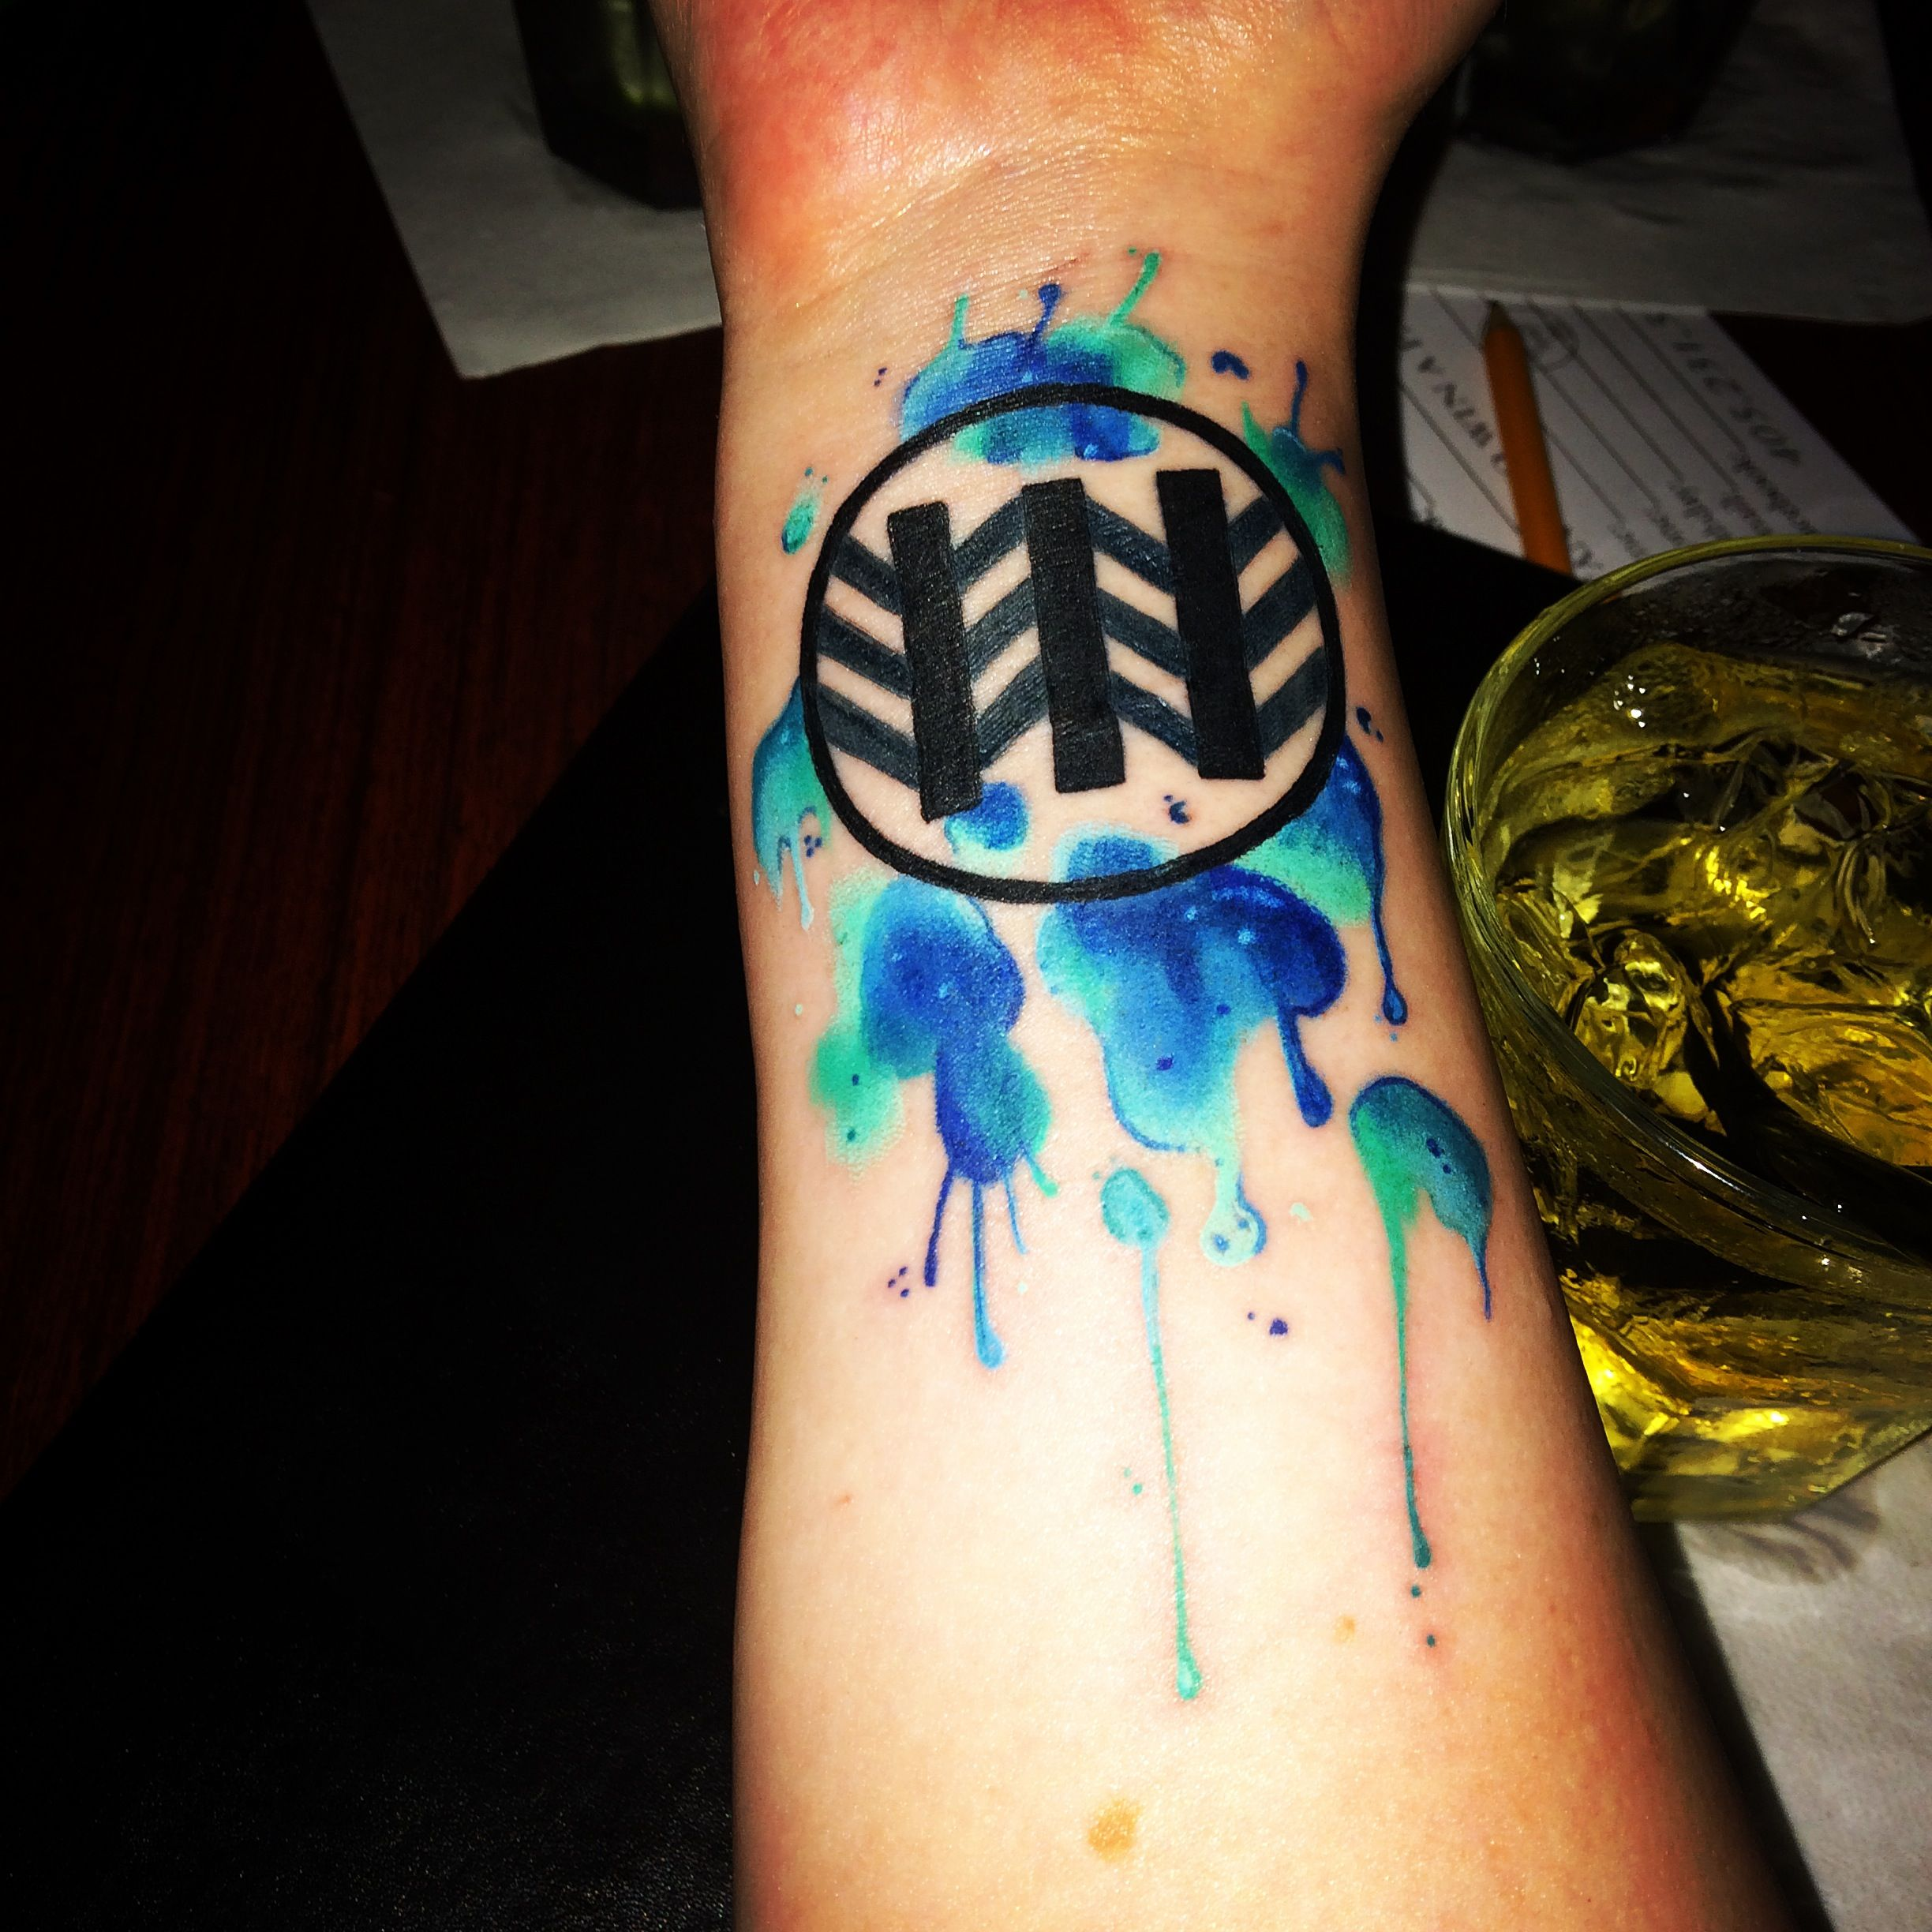 Tattoo Ideas Personal: My Own Personal Jack White Tattoo.